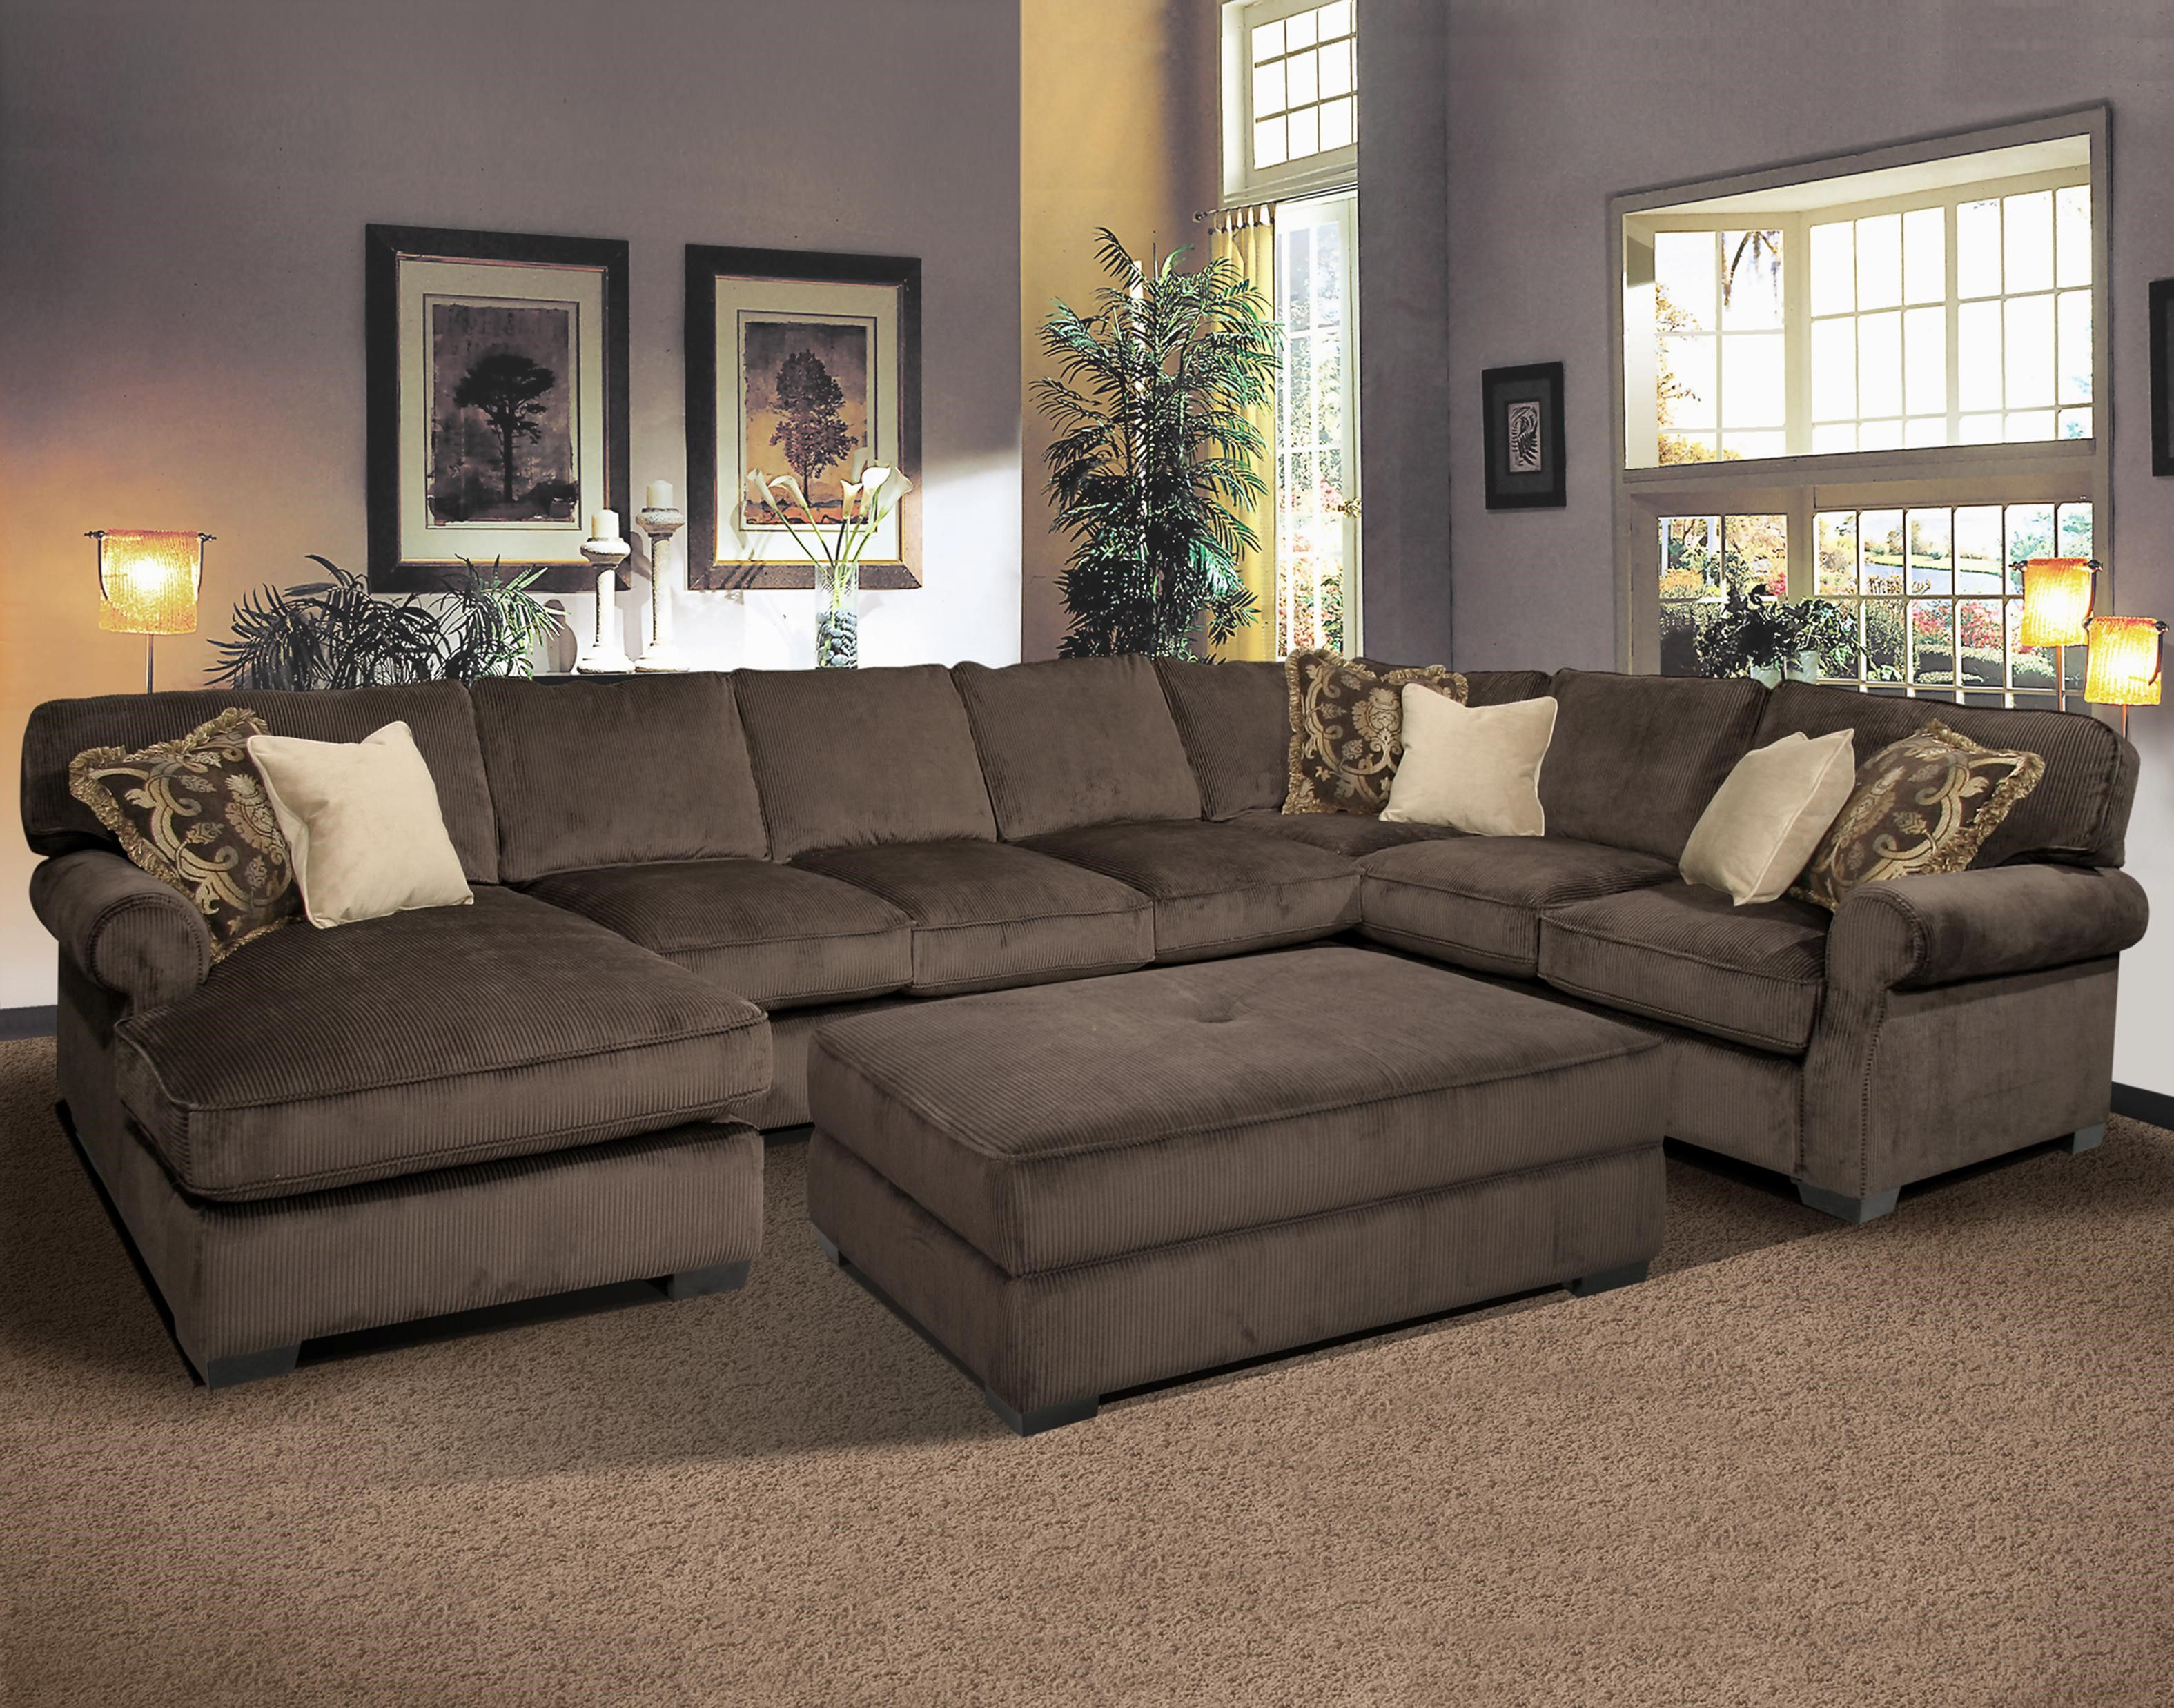 Elegant Large L Shaped Sectional Sofa With Left Side Loveseat Home Home Furnishings Furniture